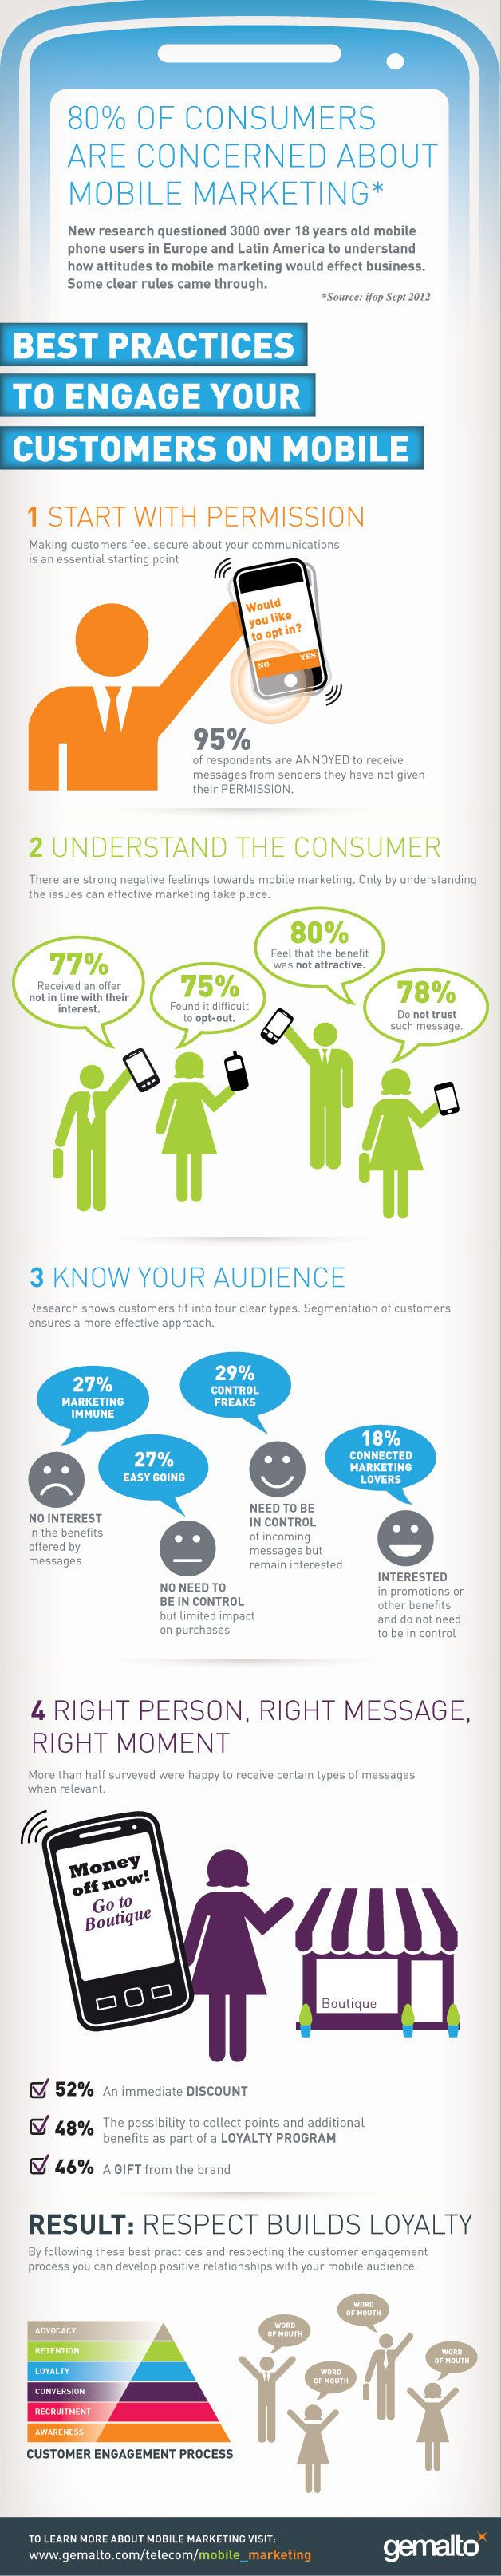 Mobile Marketing Best Practices To Engage Your Customers